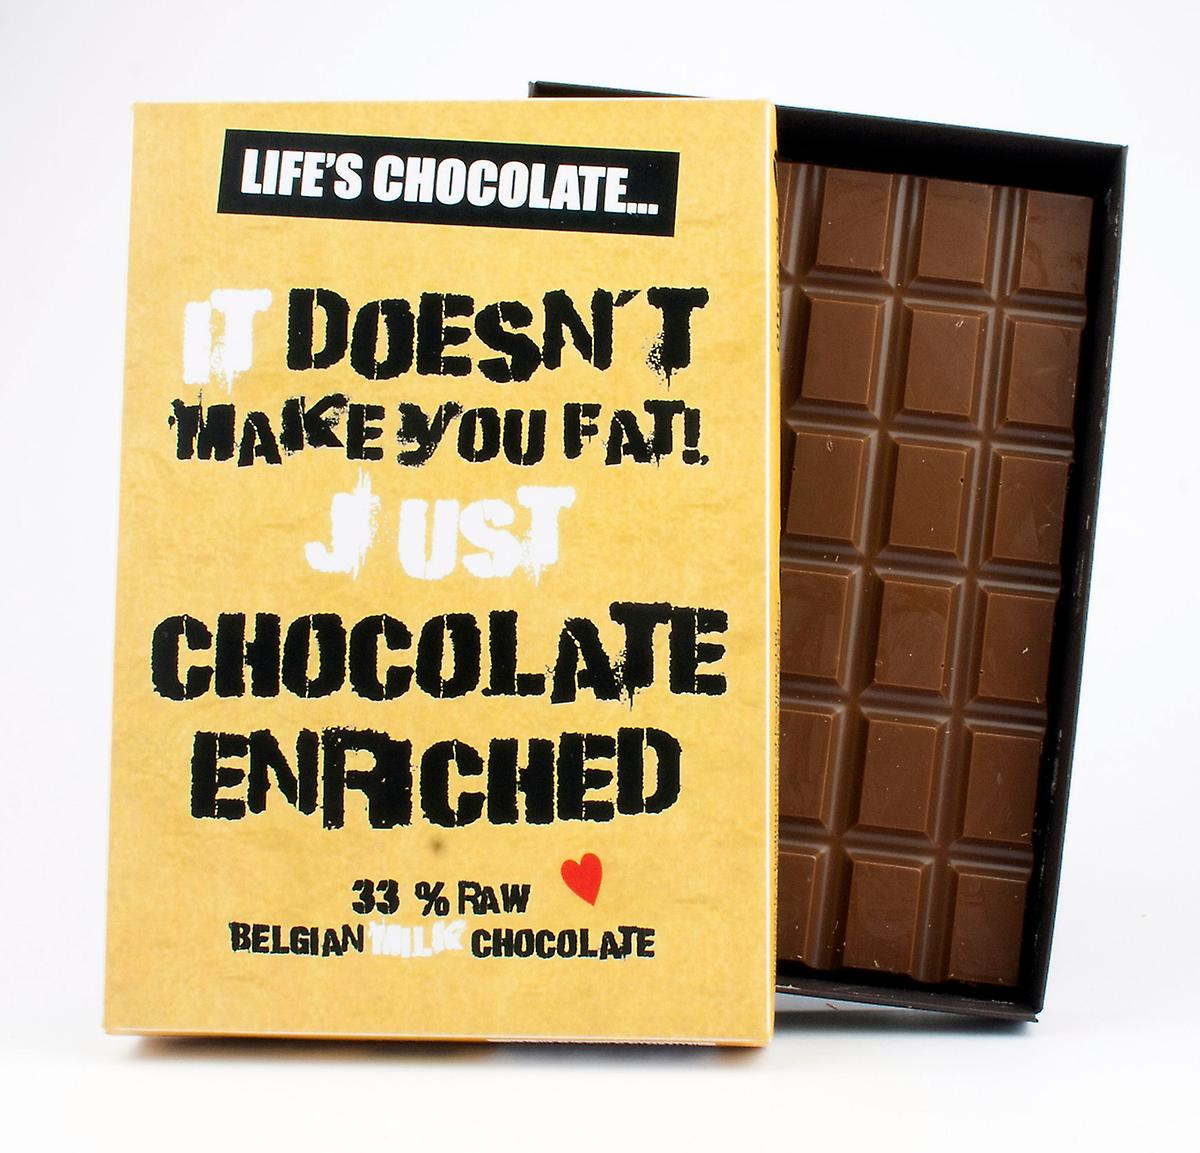 Funny Boxed Chocolate Quote Gift For Men Women Best Friend Greeting Card for Him or Her LC116